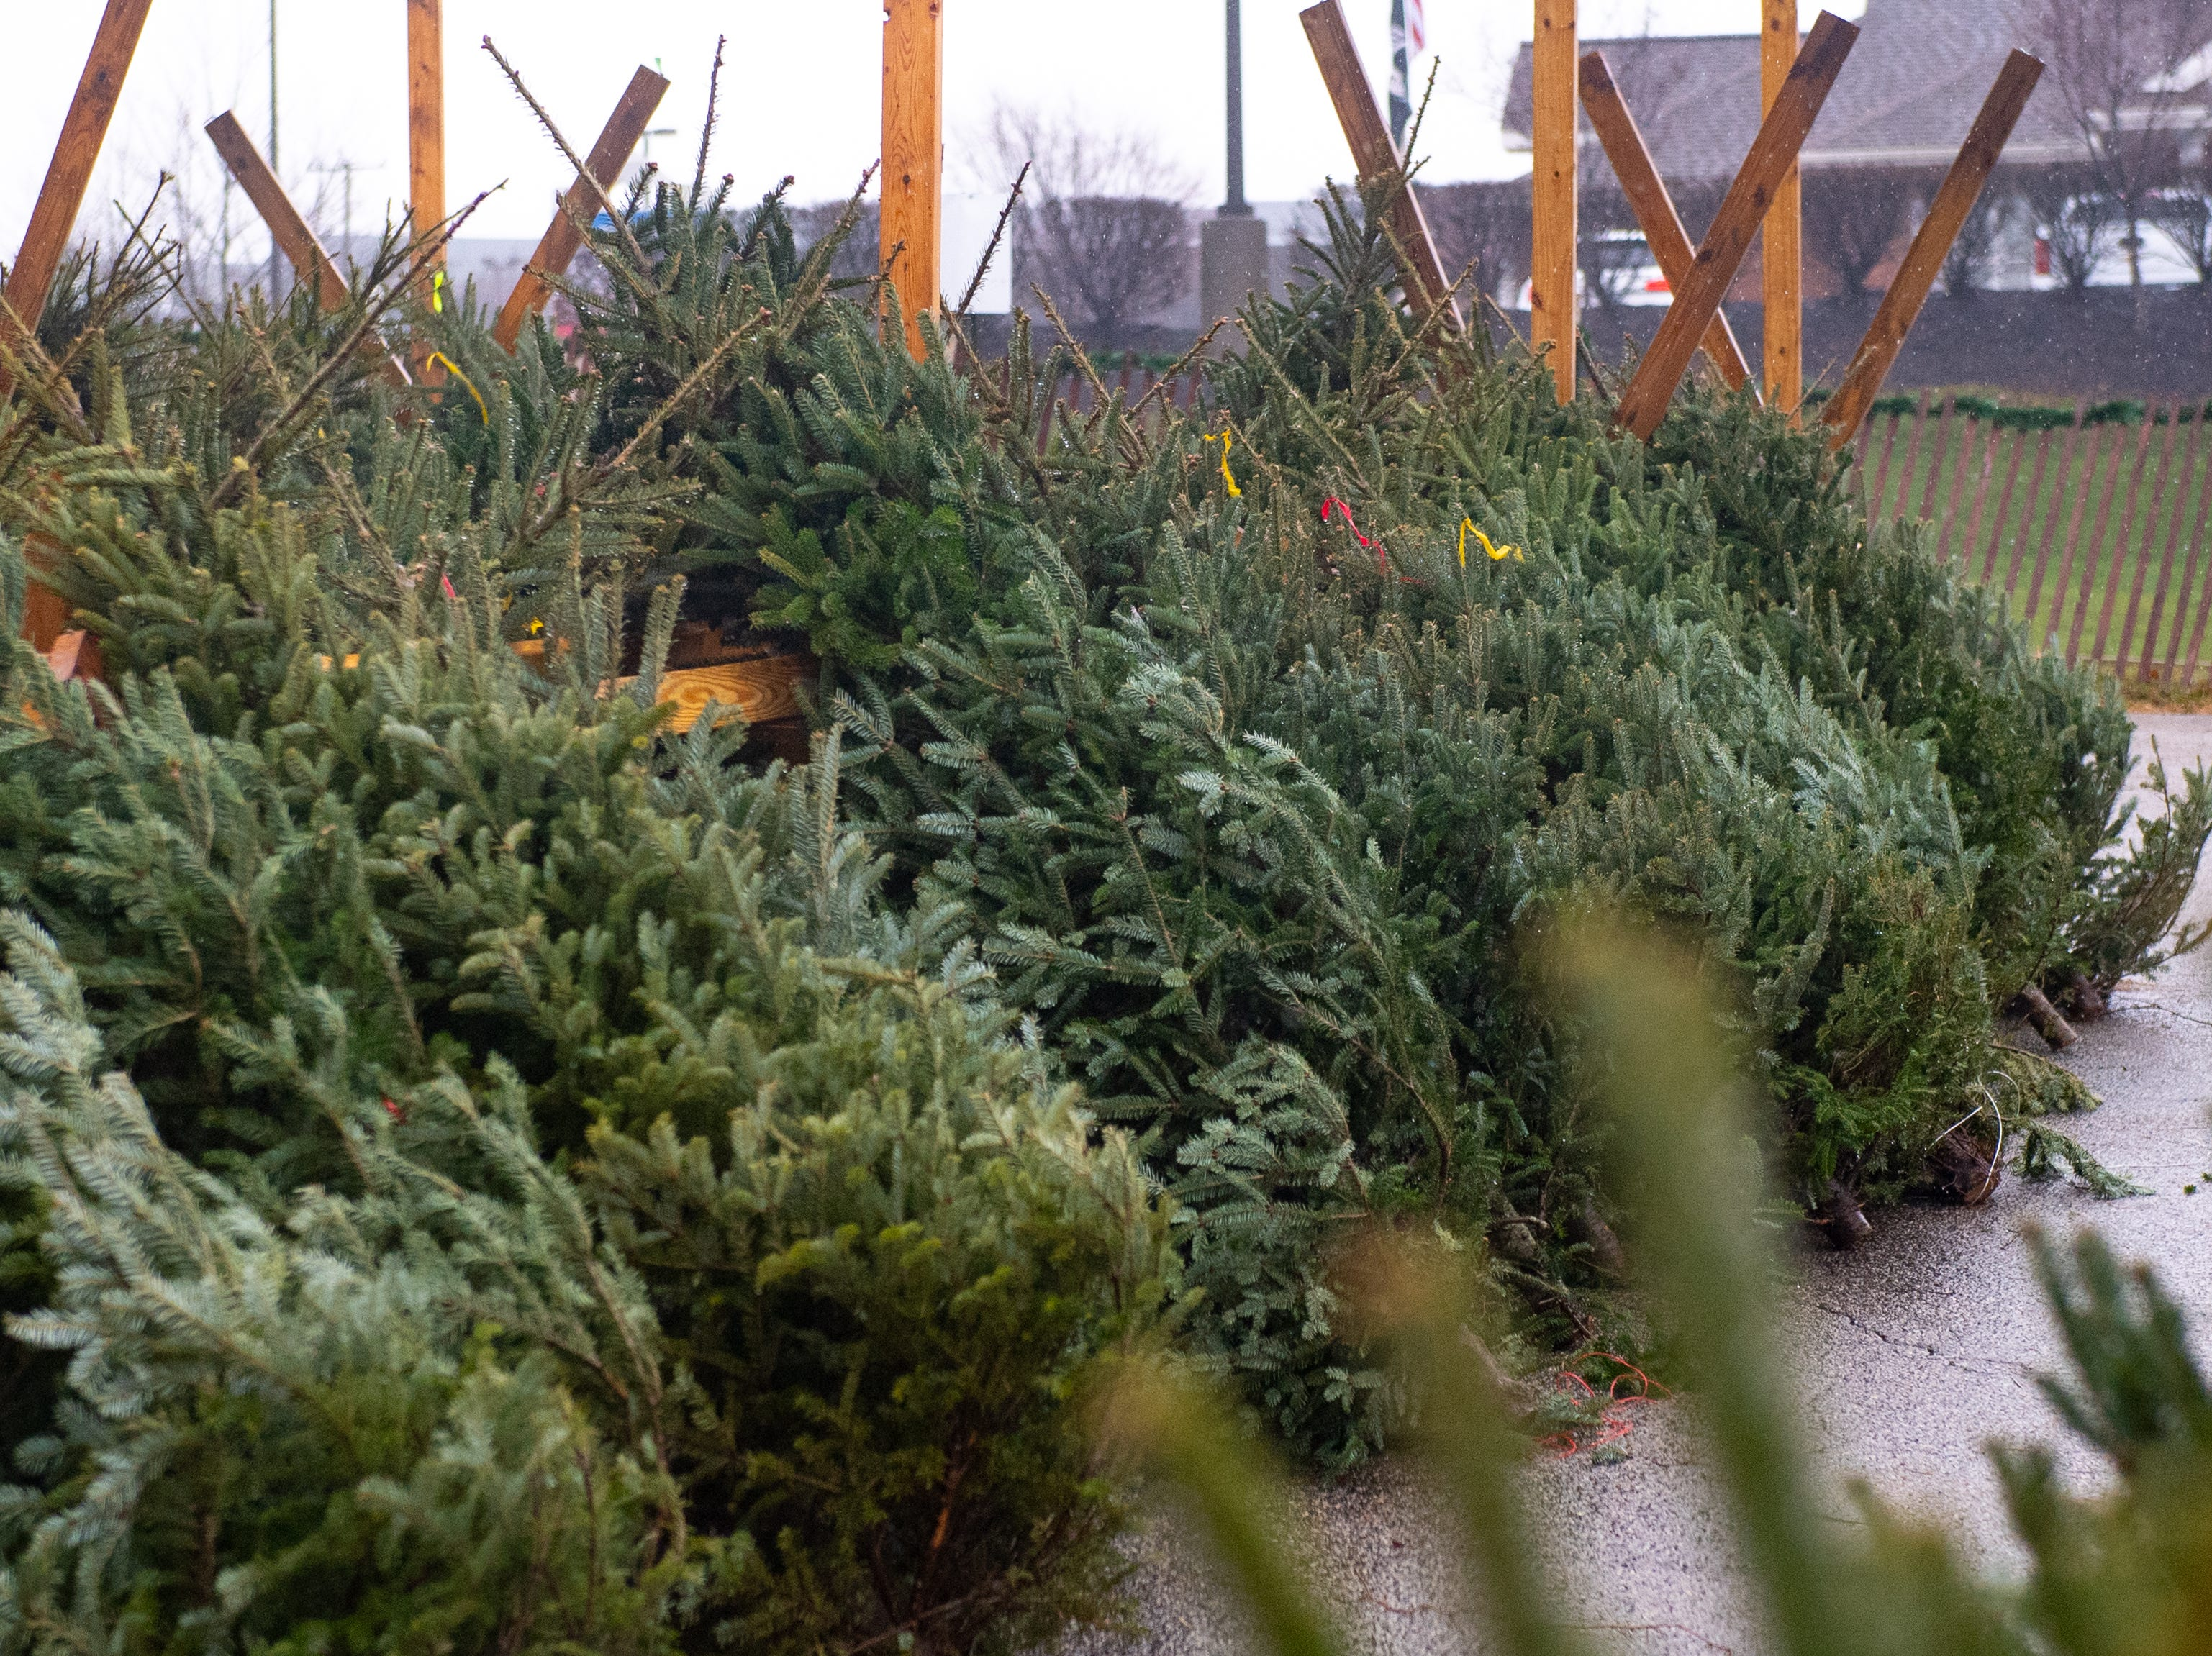 The annual Christmas Tree Sale in the parking lot of Ollie's Bargain Outlet has been open since Black Friday and will go until Christmas Eve.